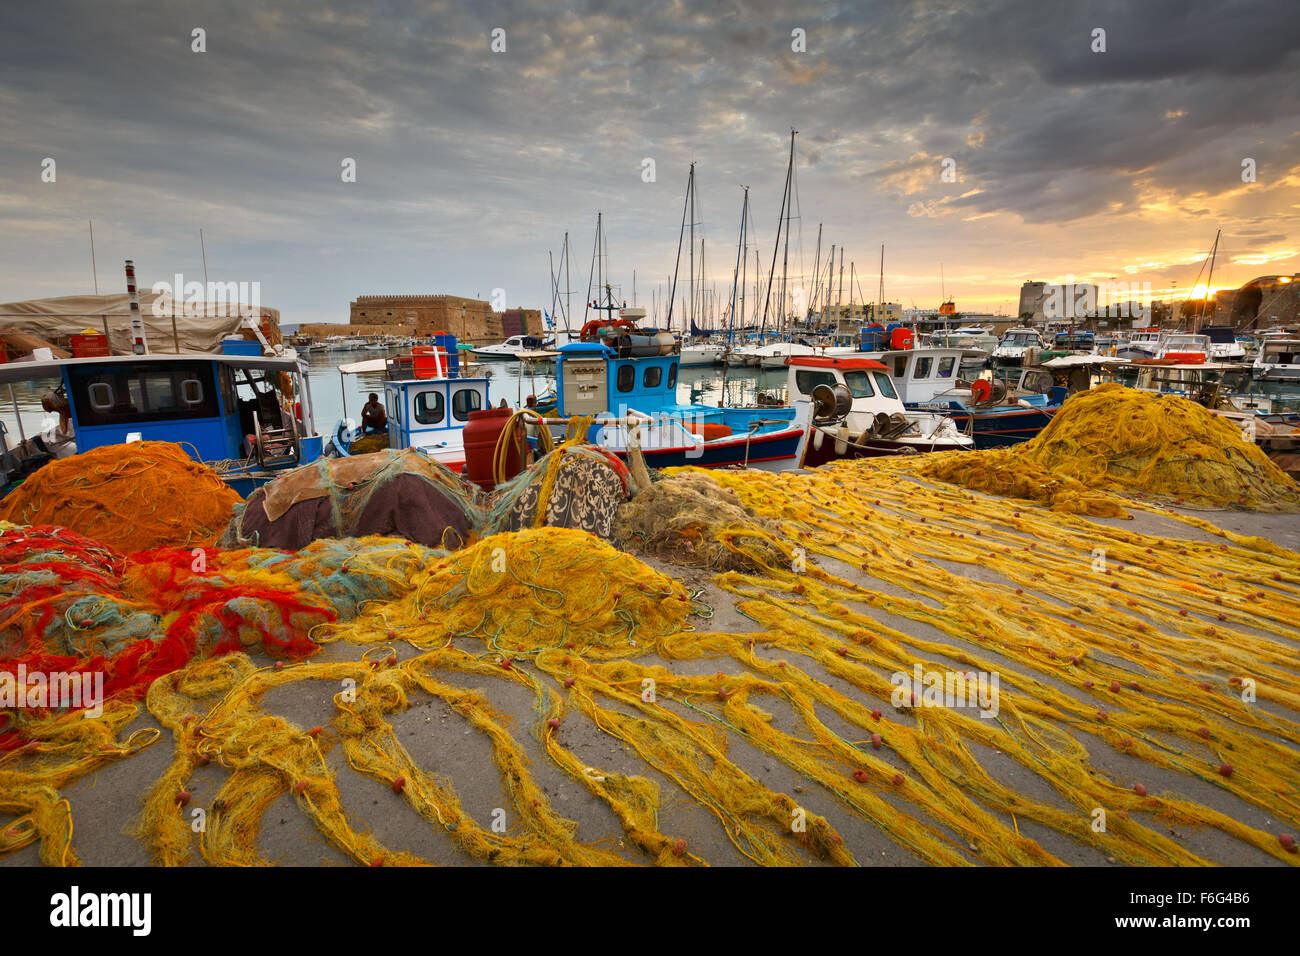 Fishing boats and fishing nets in the old harbour of Heraklion in Crete, Greece - Stock Image